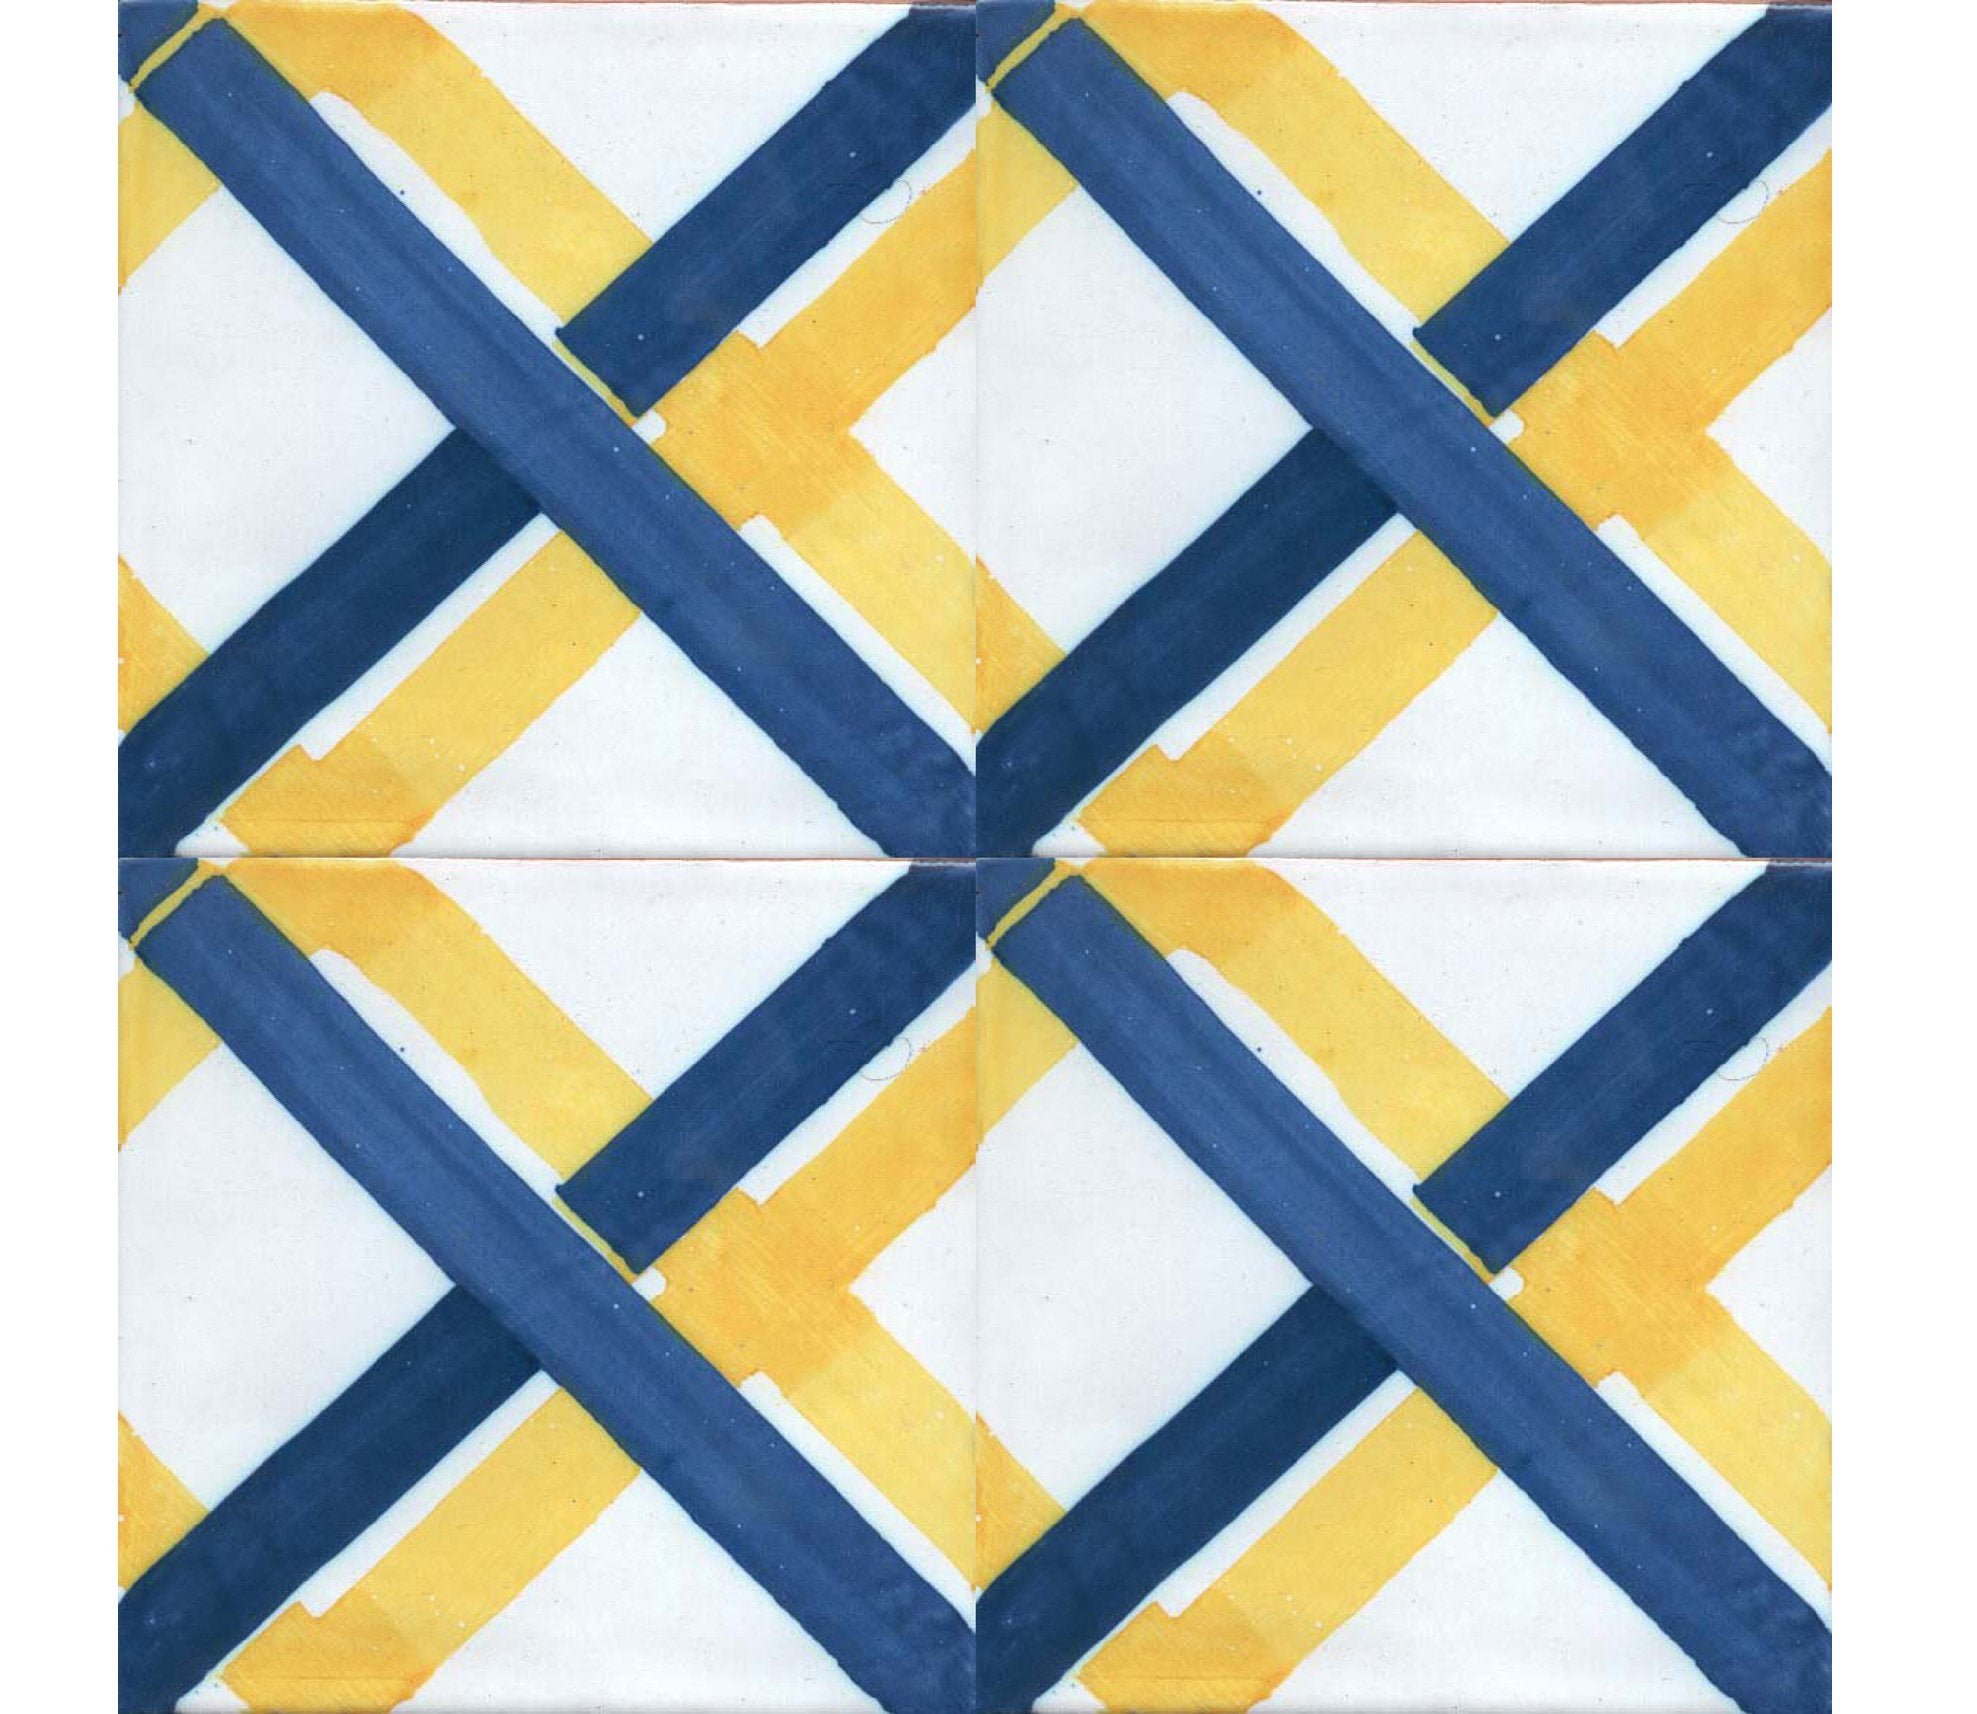 Series S Handpainted Tiles Product Image 19